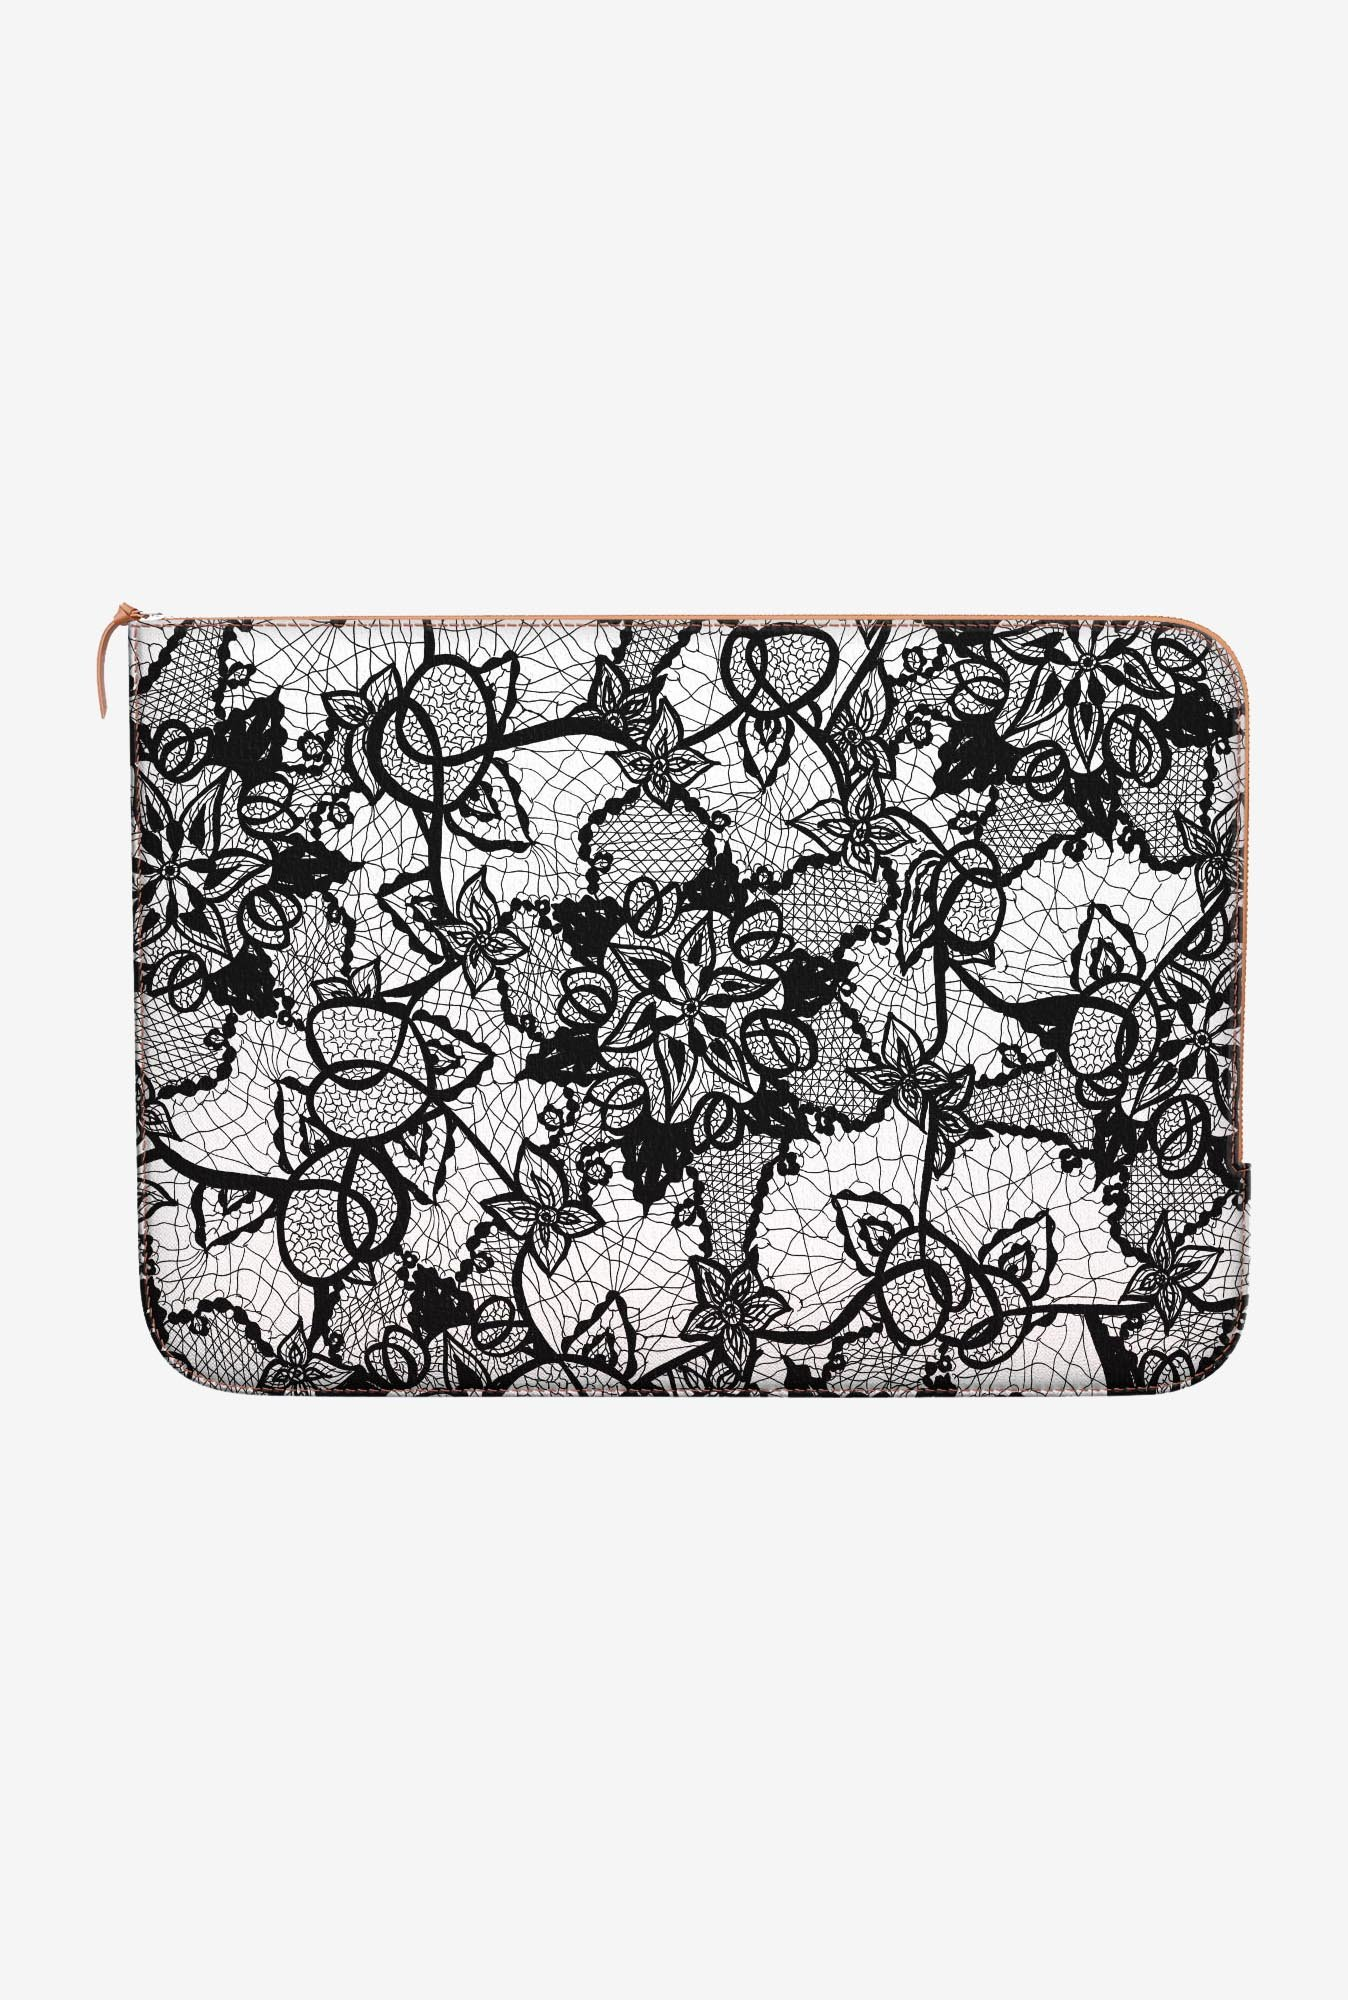 DailyObjects Lace Pattern MacBook 12 Zippered Sleeve